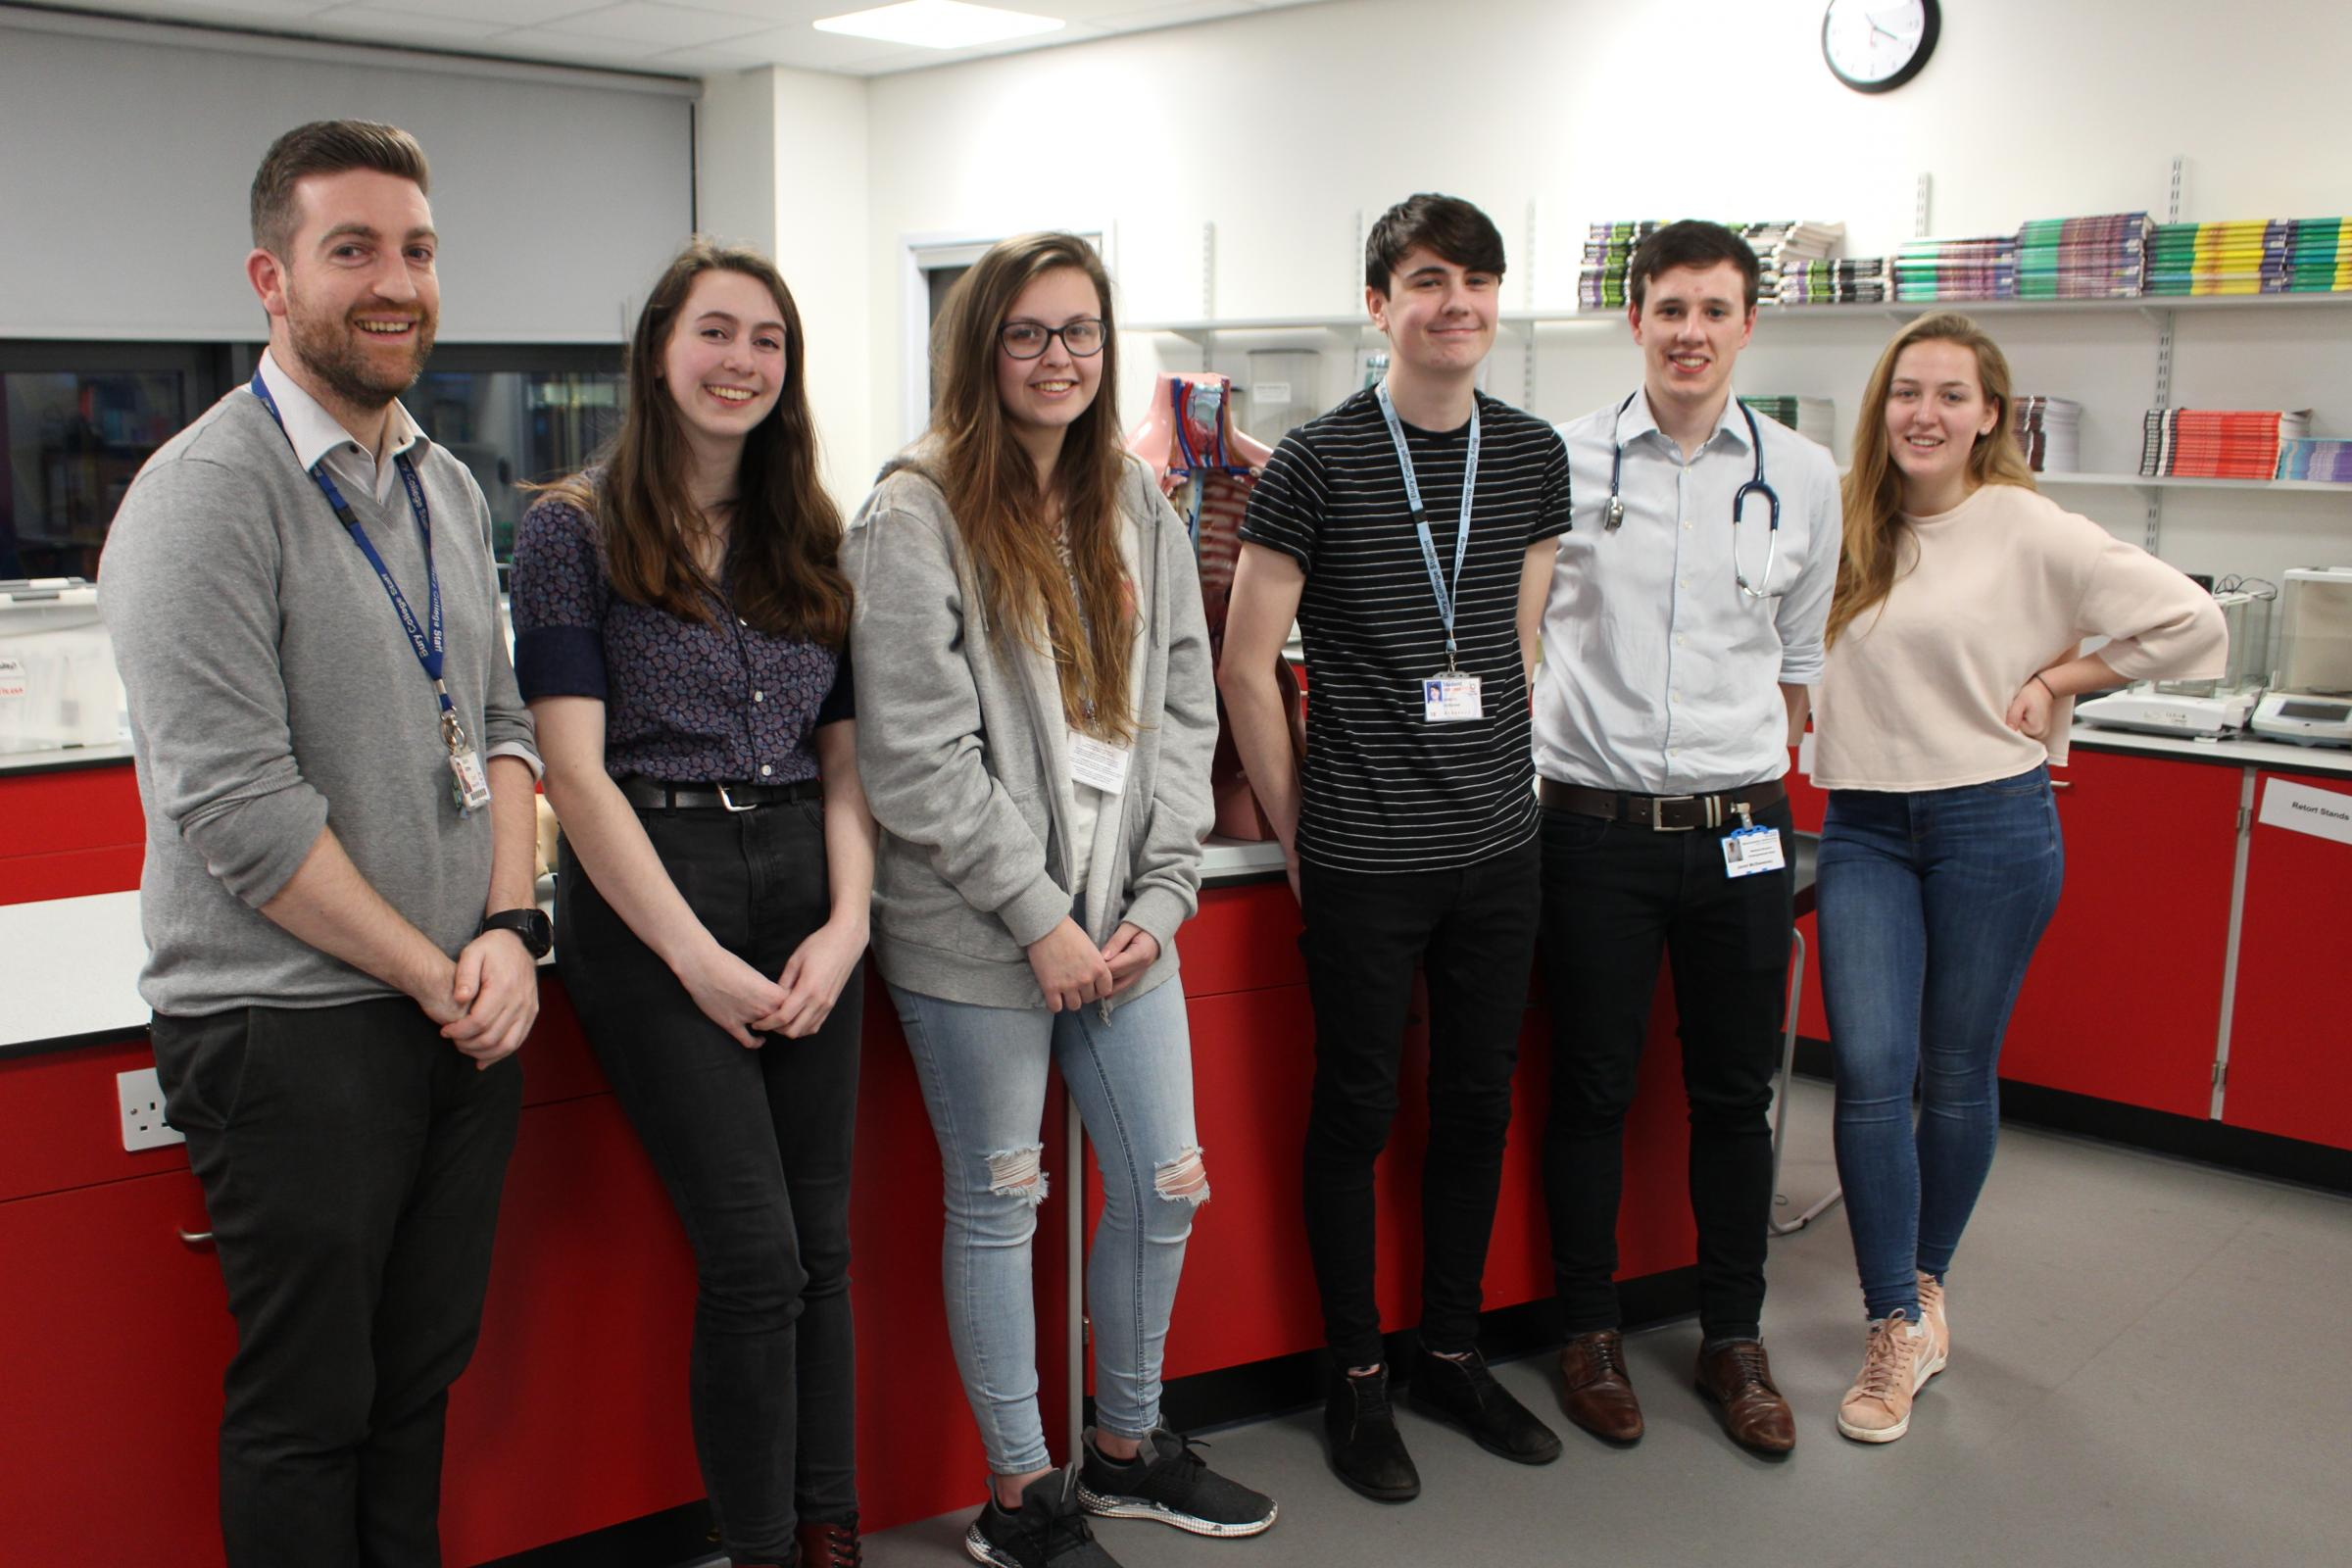 VISIT: Trainee doctors met with pupils at Bury College. Pictured, Martin Attree, left, with Ashleigh Smith, Amy Duckworth, Gareth Kershaw, Jared McSweeney and Georgia Cross